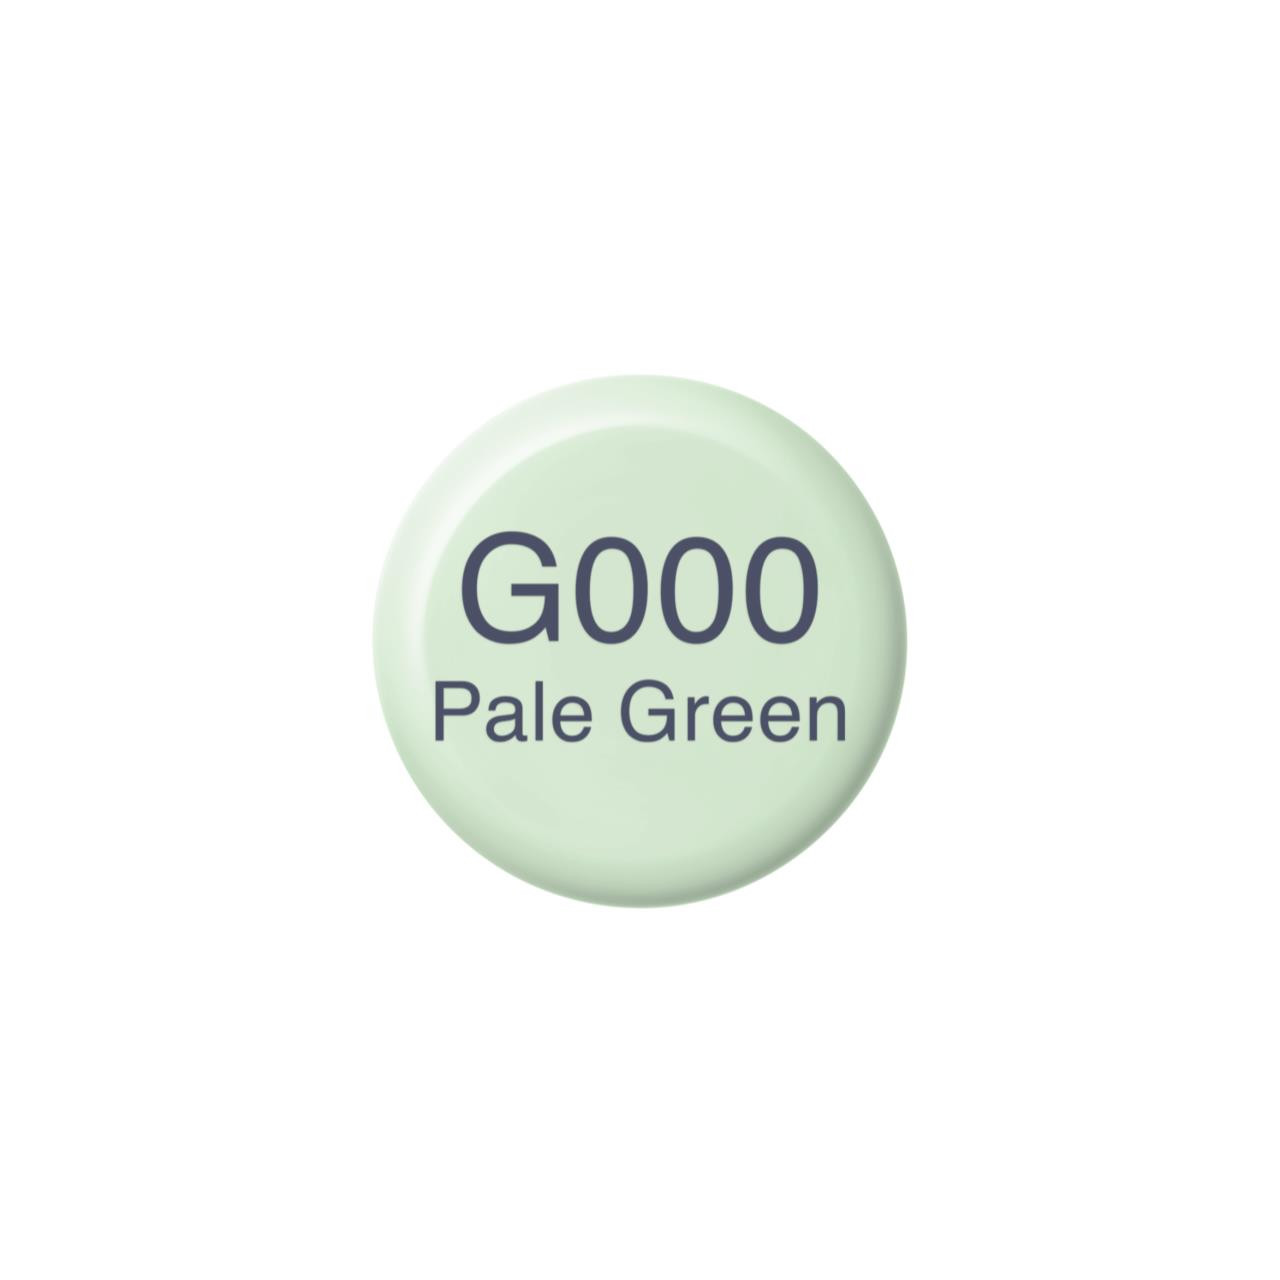 G000 Pale Green, Copic Ink - 4511338057124